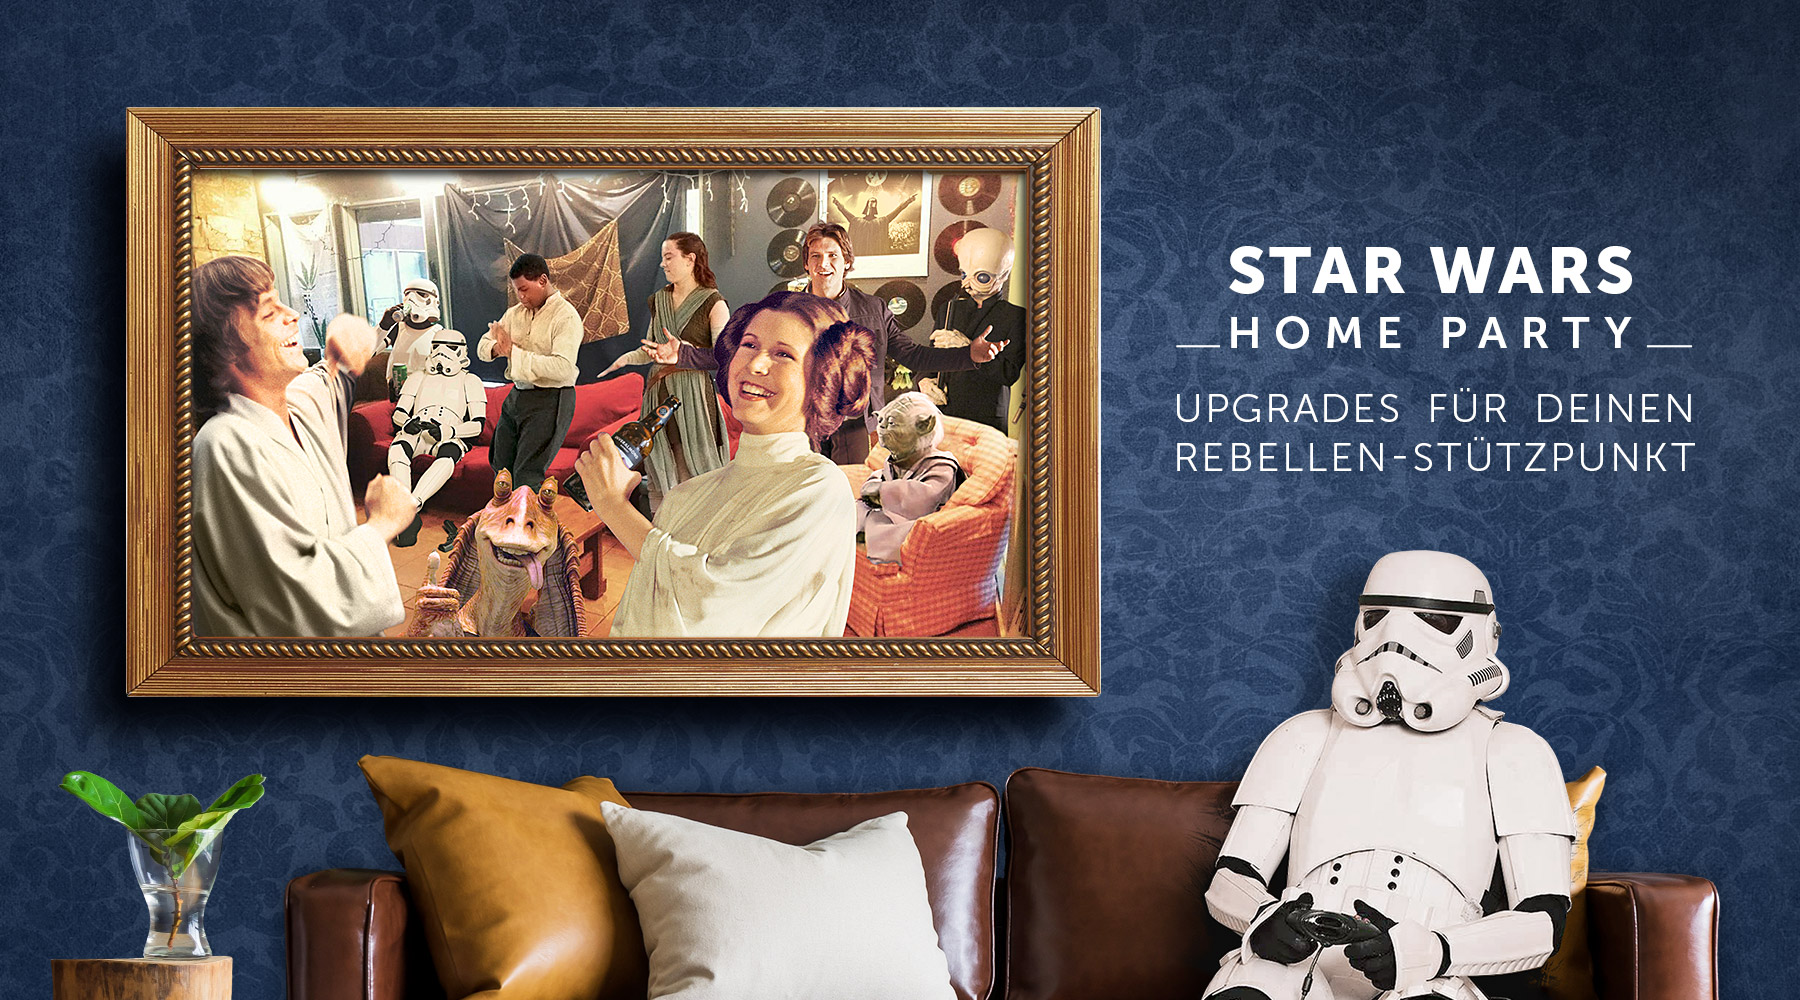 Star Wars Home Party